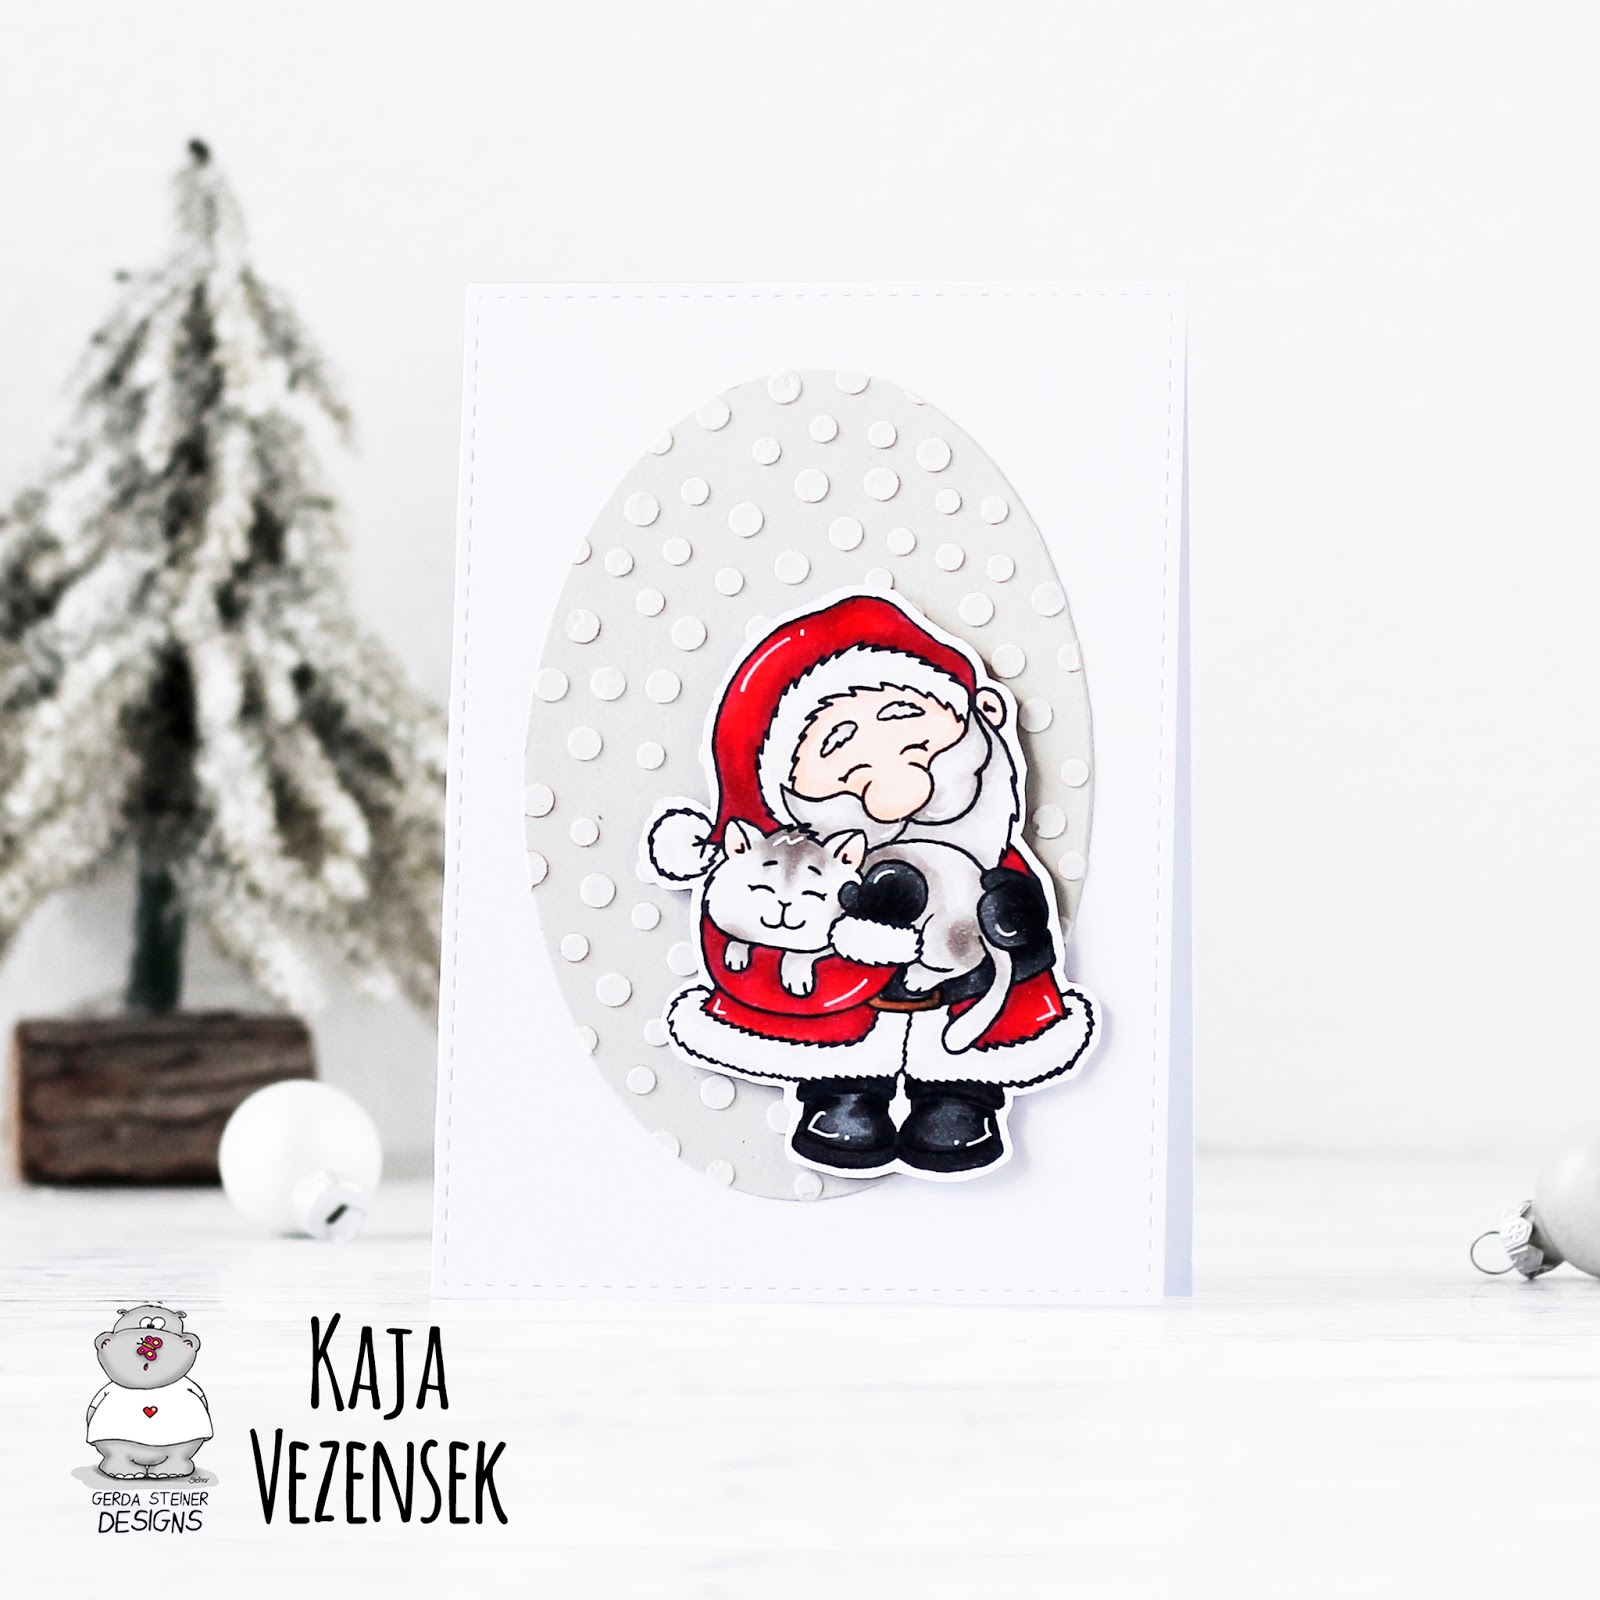 Santa and a kitten | GERDA STEINER